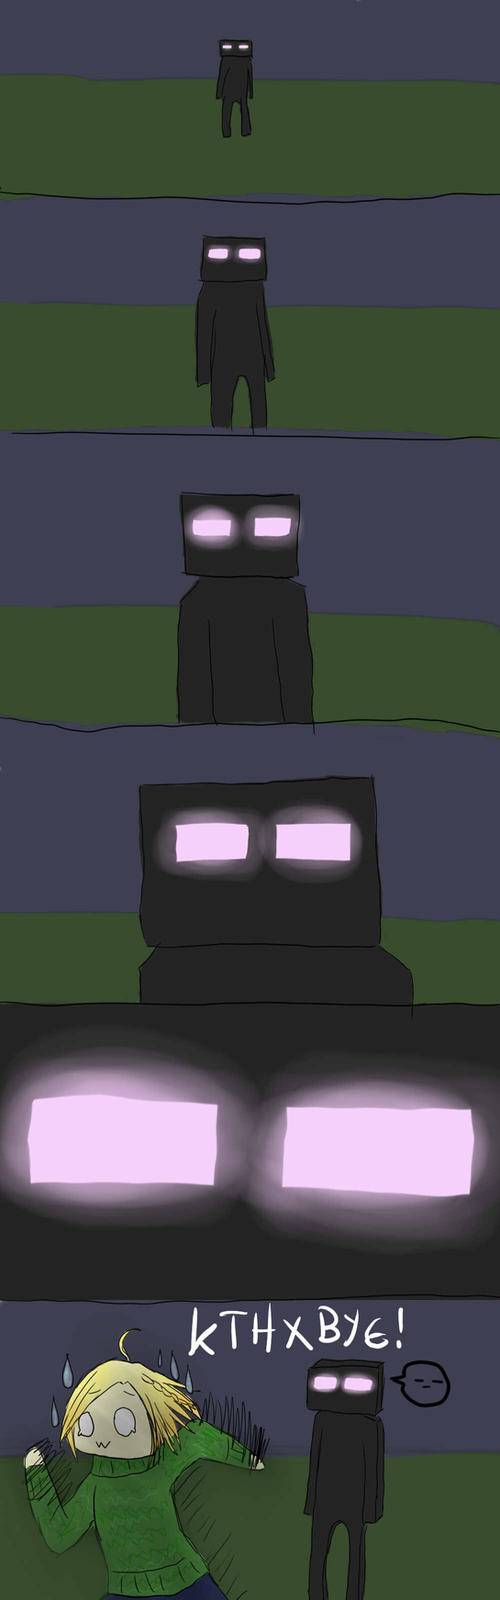 enderman and creeper love story 13419 usbdata